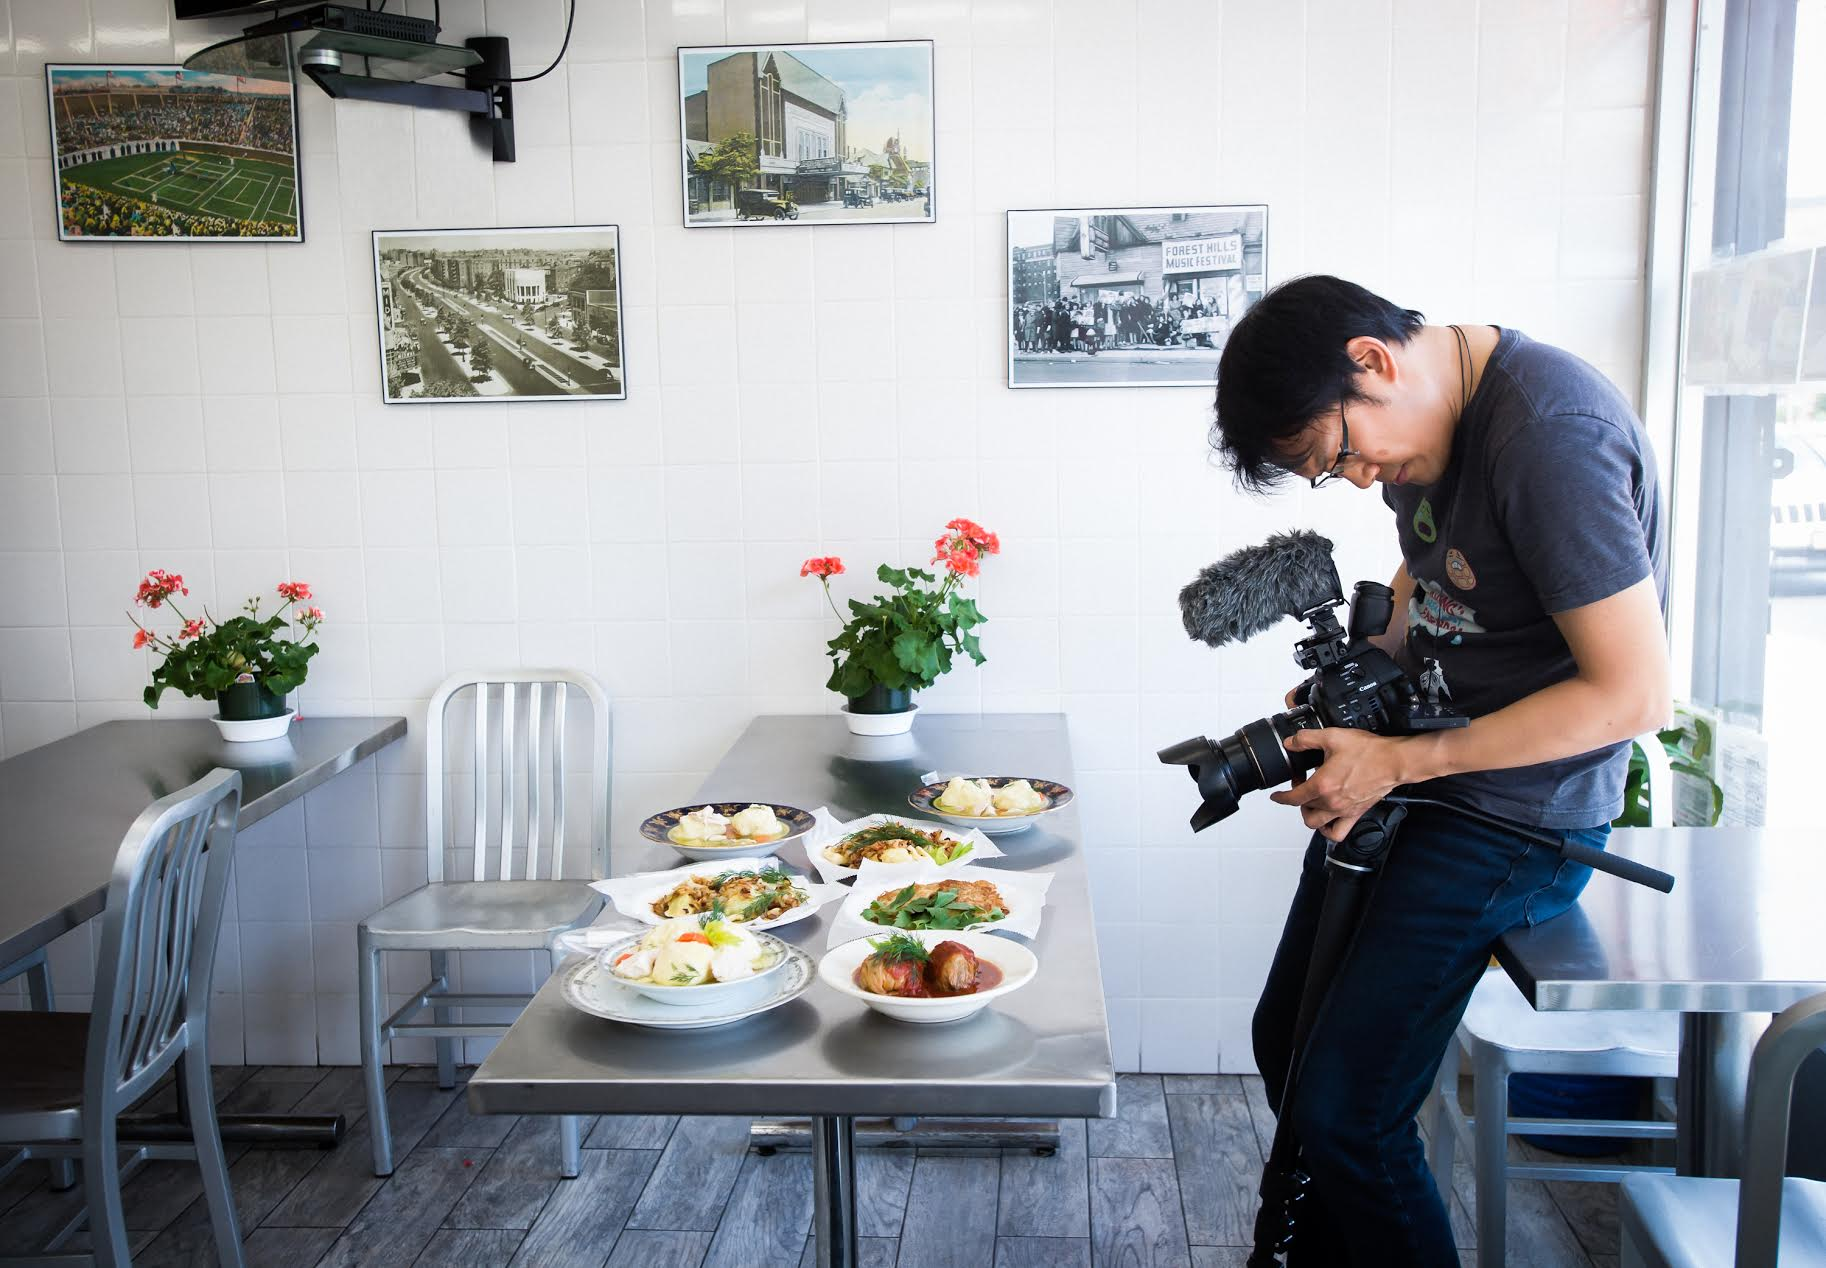 This Food Documentary Shows You the World in a New York Minute